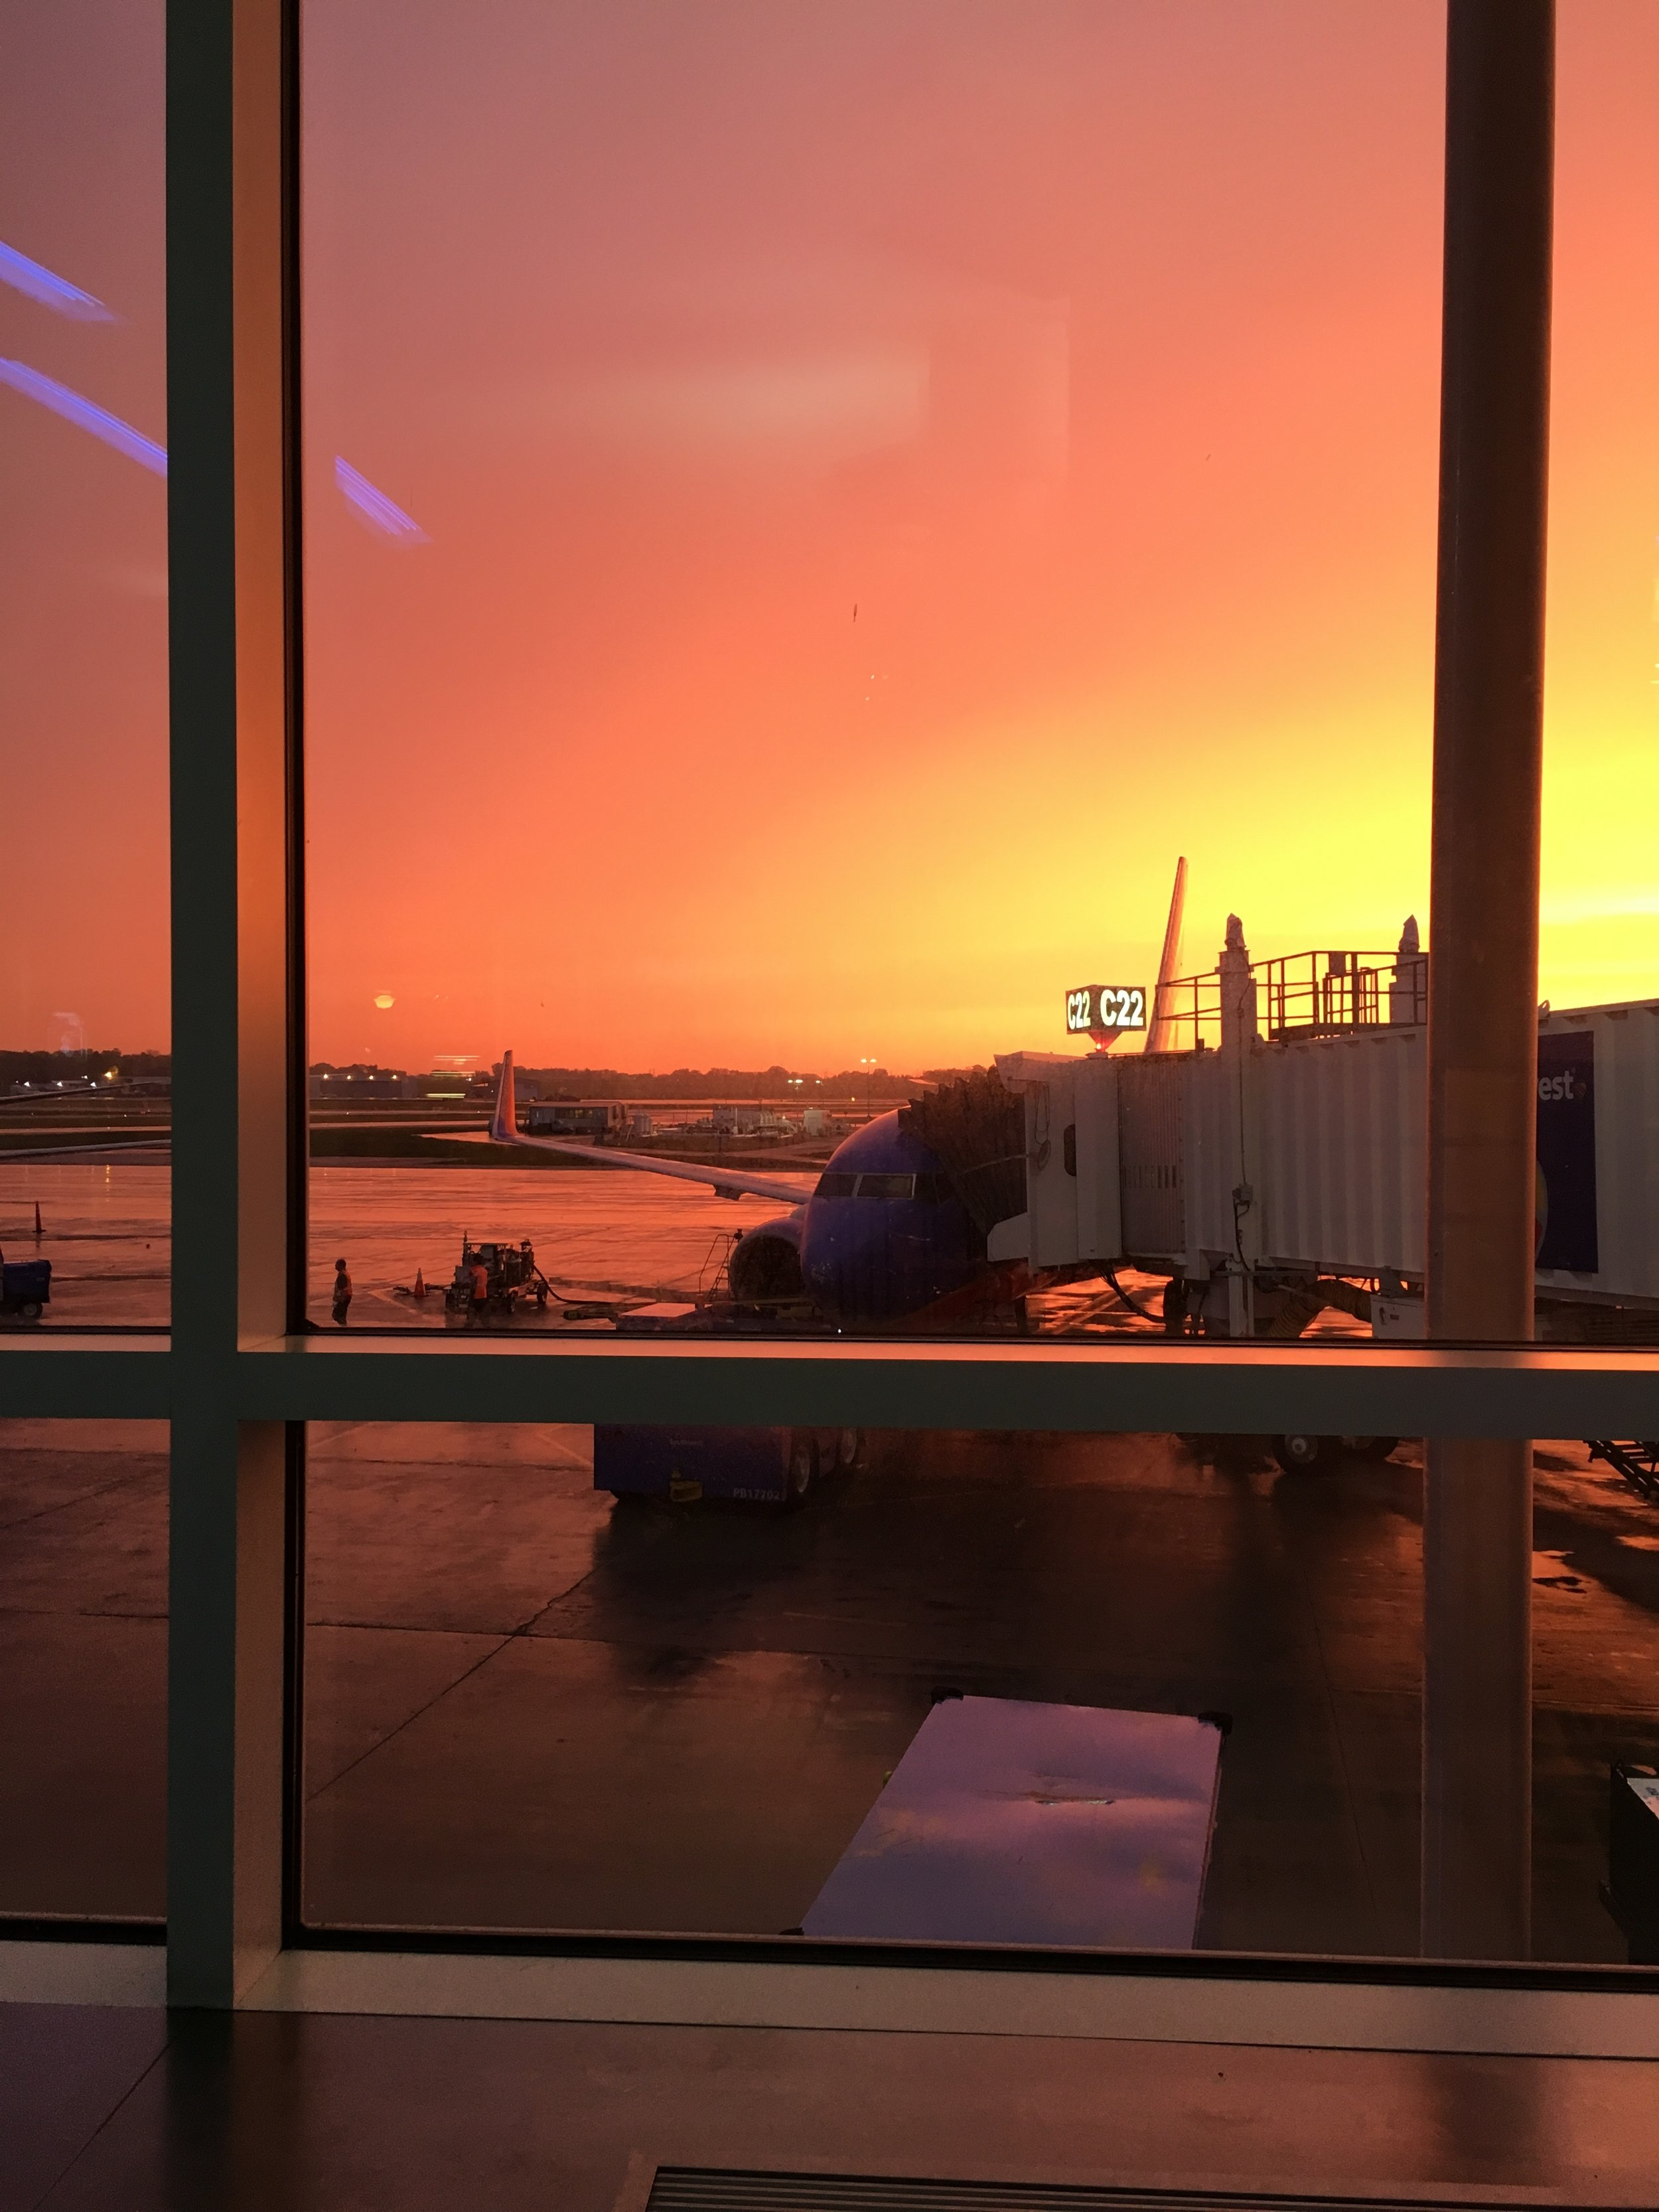 Perks of an early morning flight: watching this gorgeous sunrise!